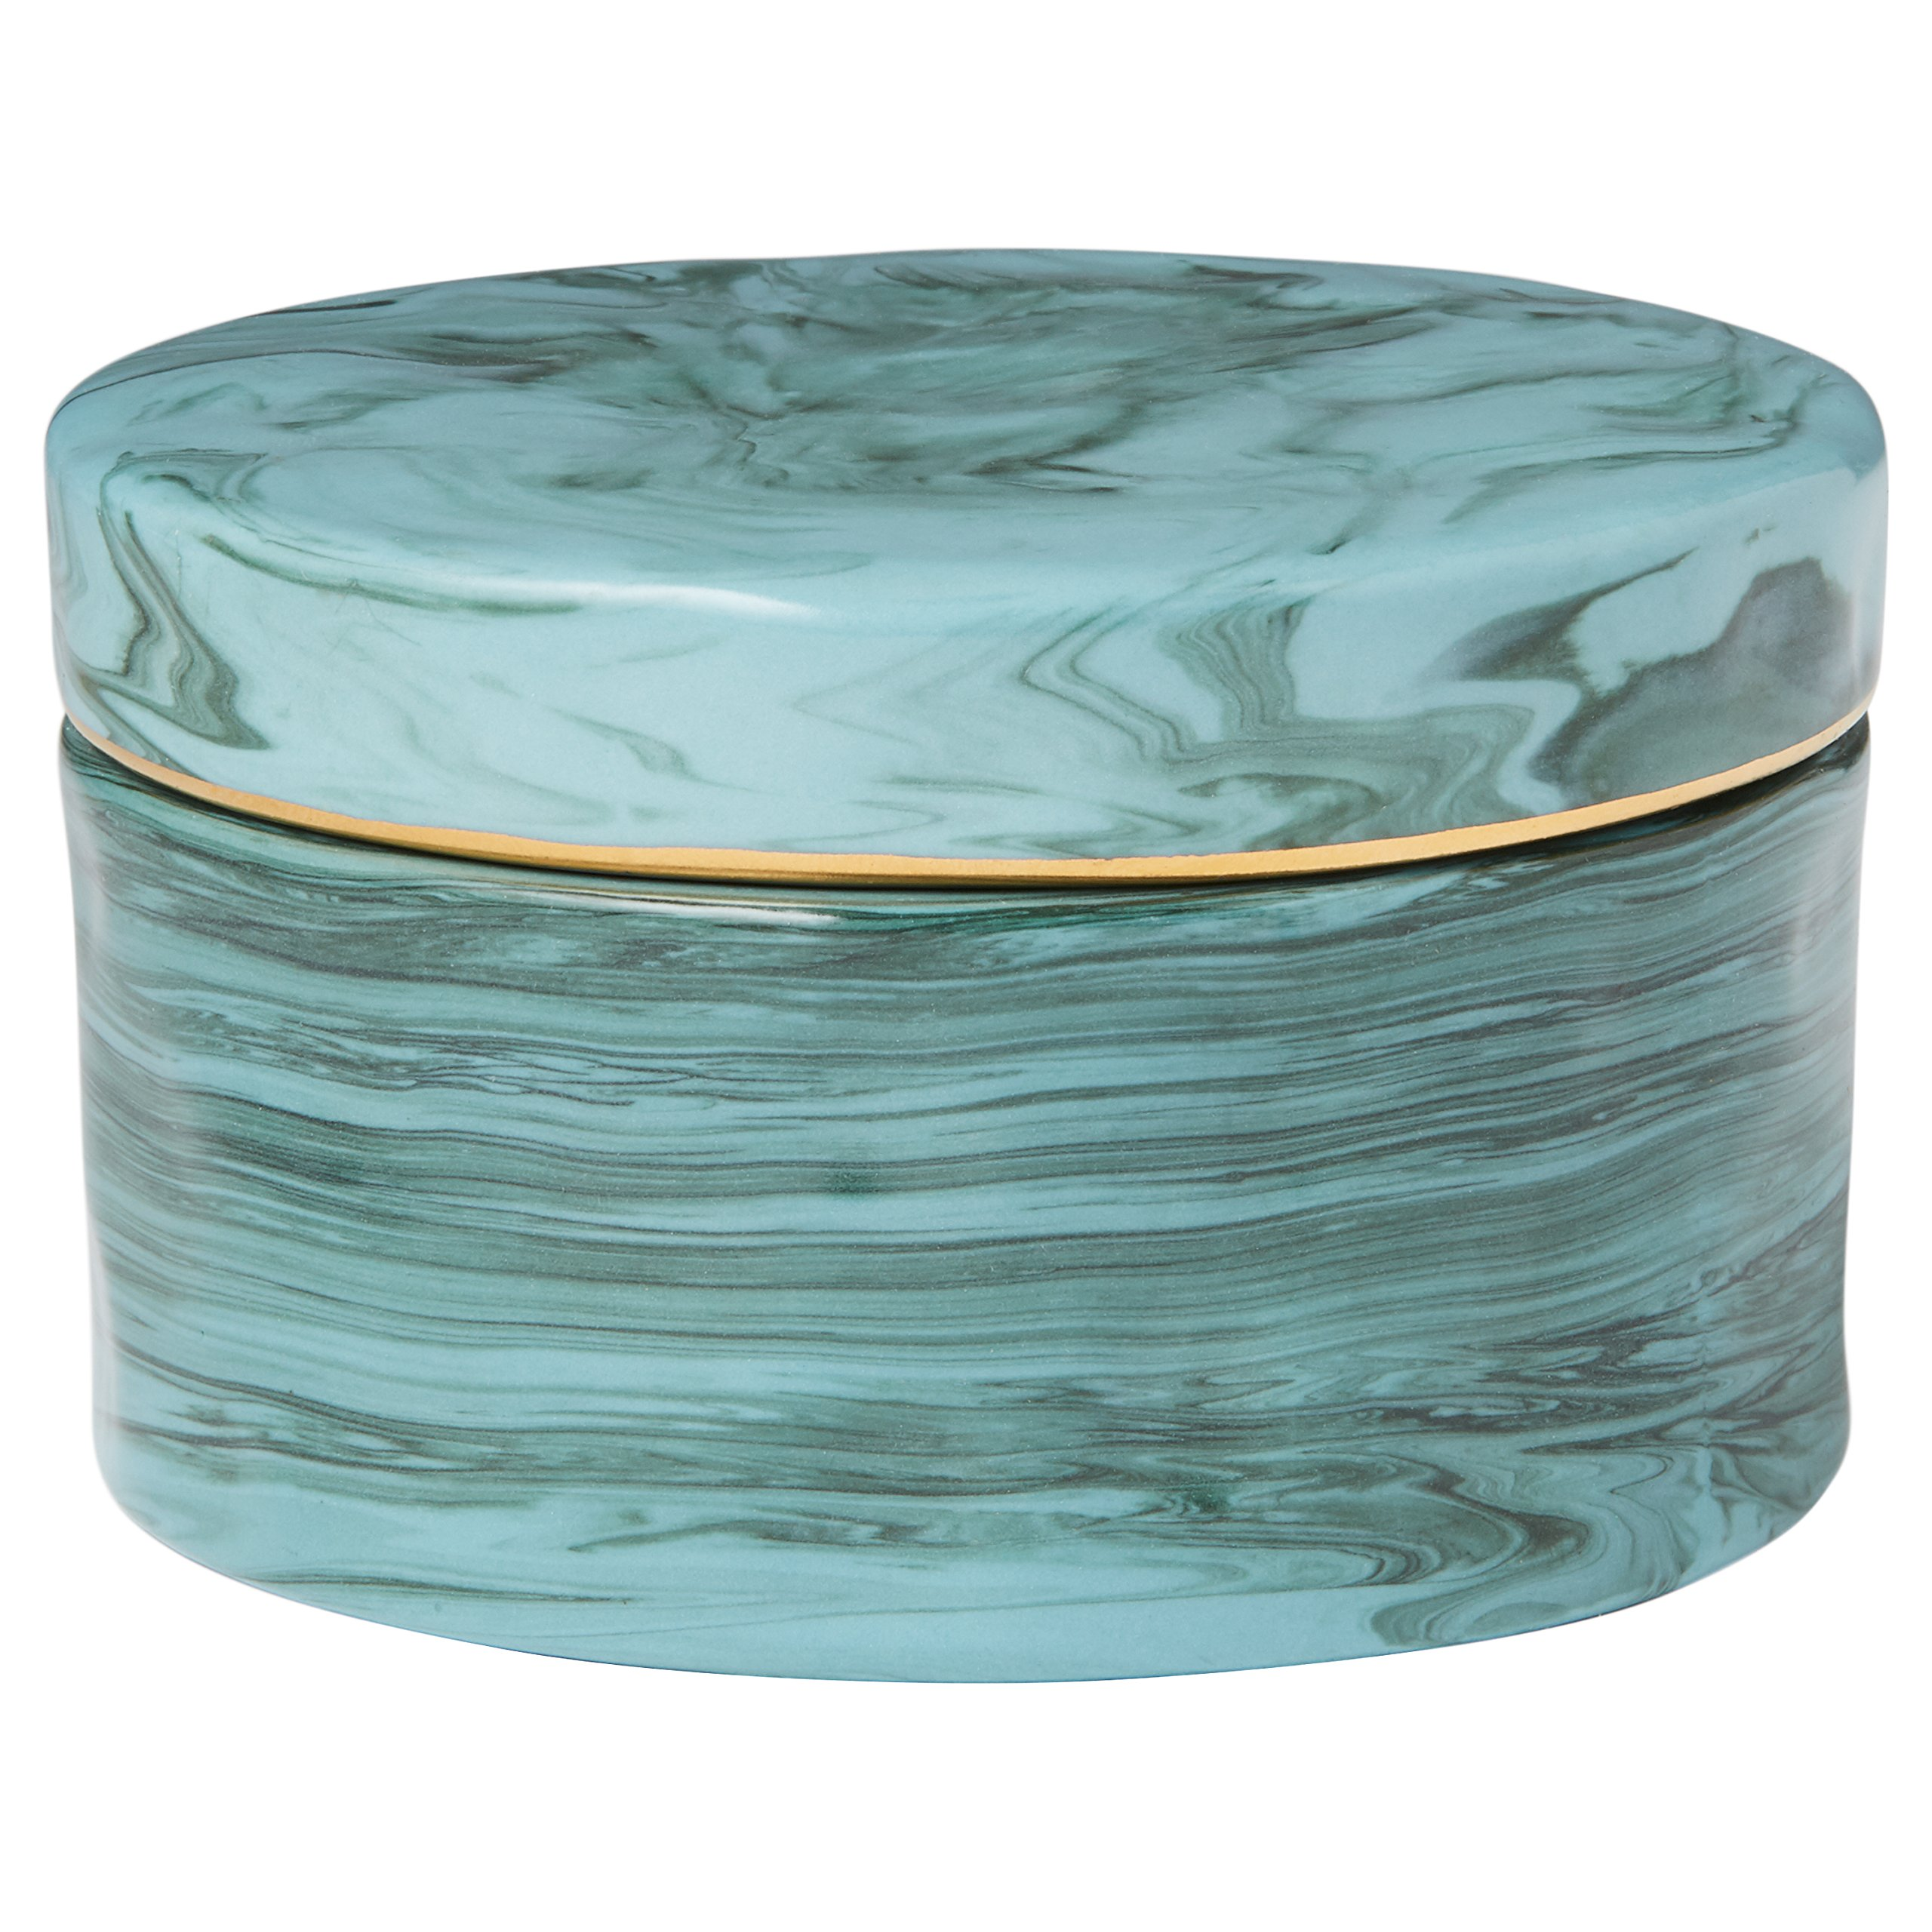 Amazon Brand – Rivet Decorative Stoneware Jewelry Keepsake Box - 4 x 2 Inch, Marbled Blue-Green